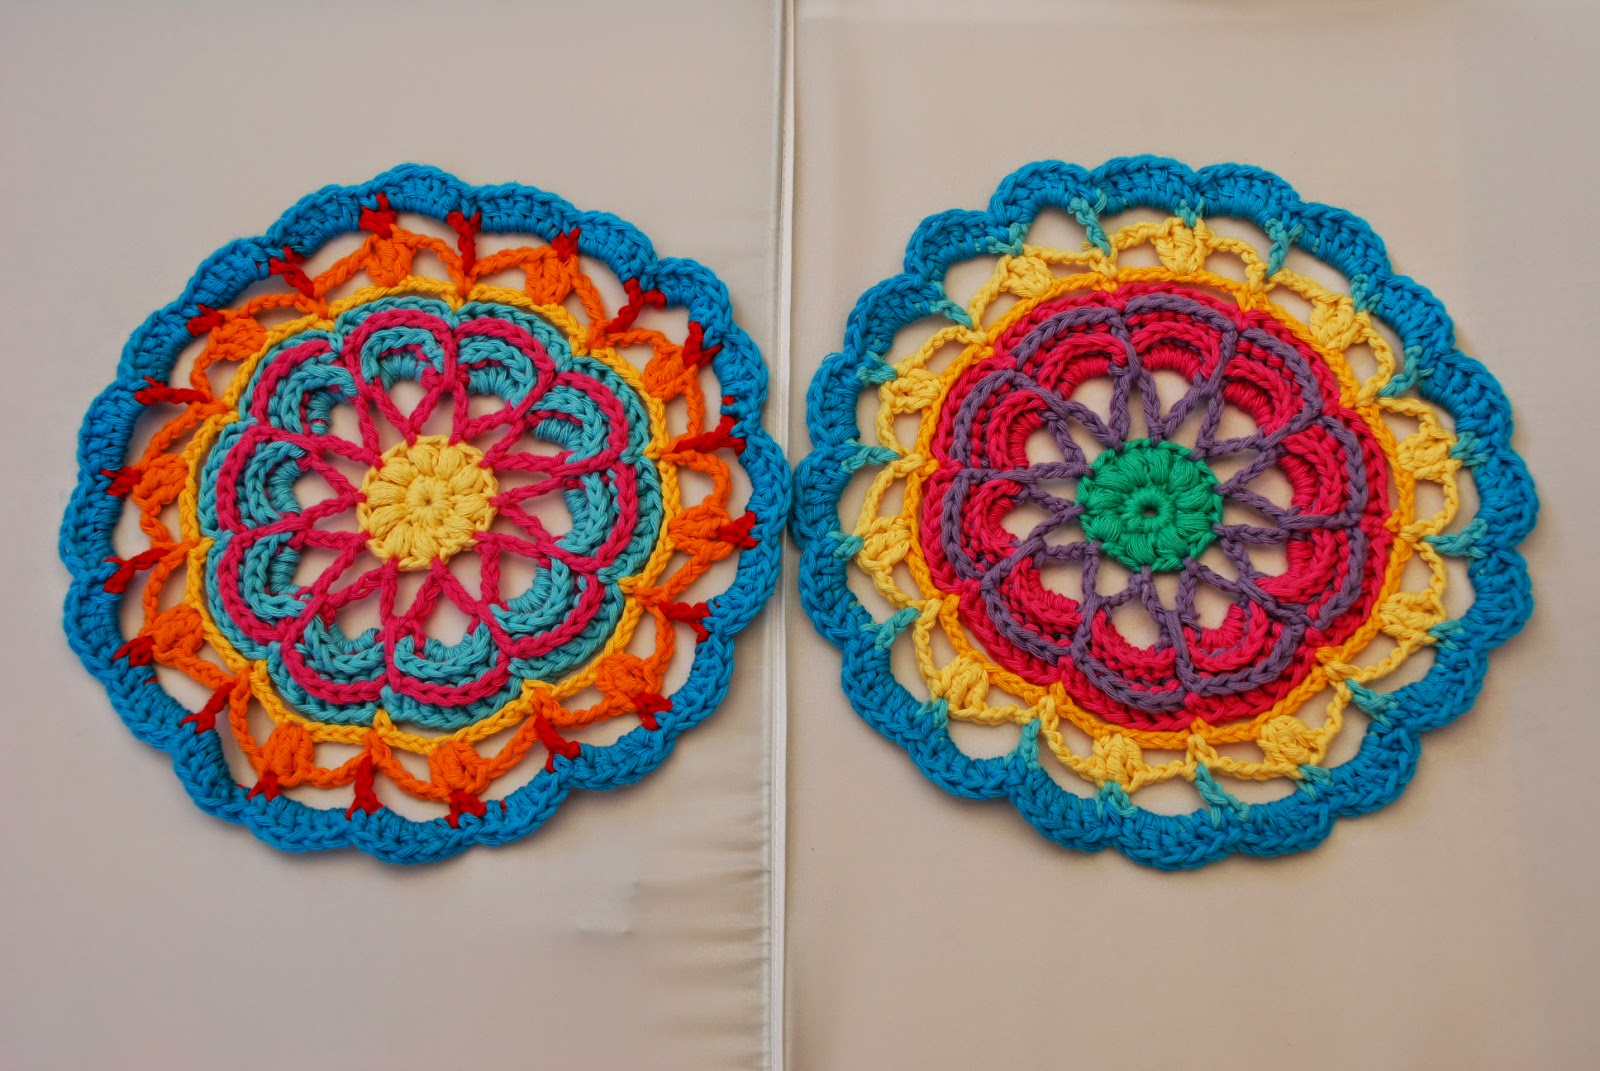 image of colourful crochet mandalas